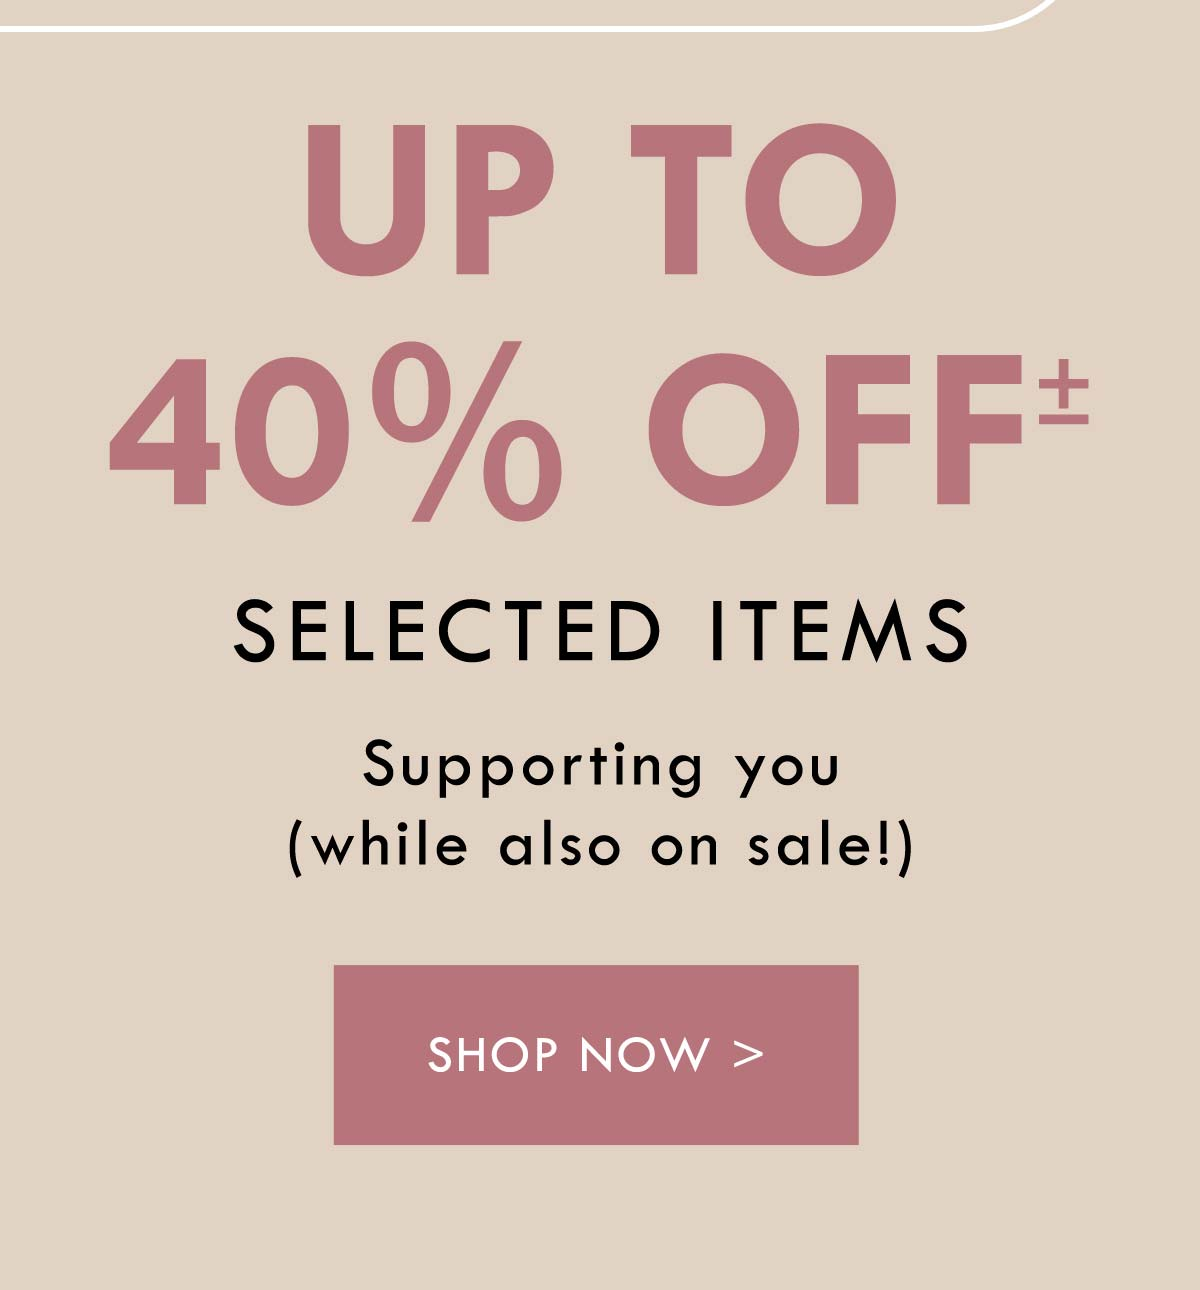 Up to 40% off selected items. Supporting you while also on sale! Shop Now.